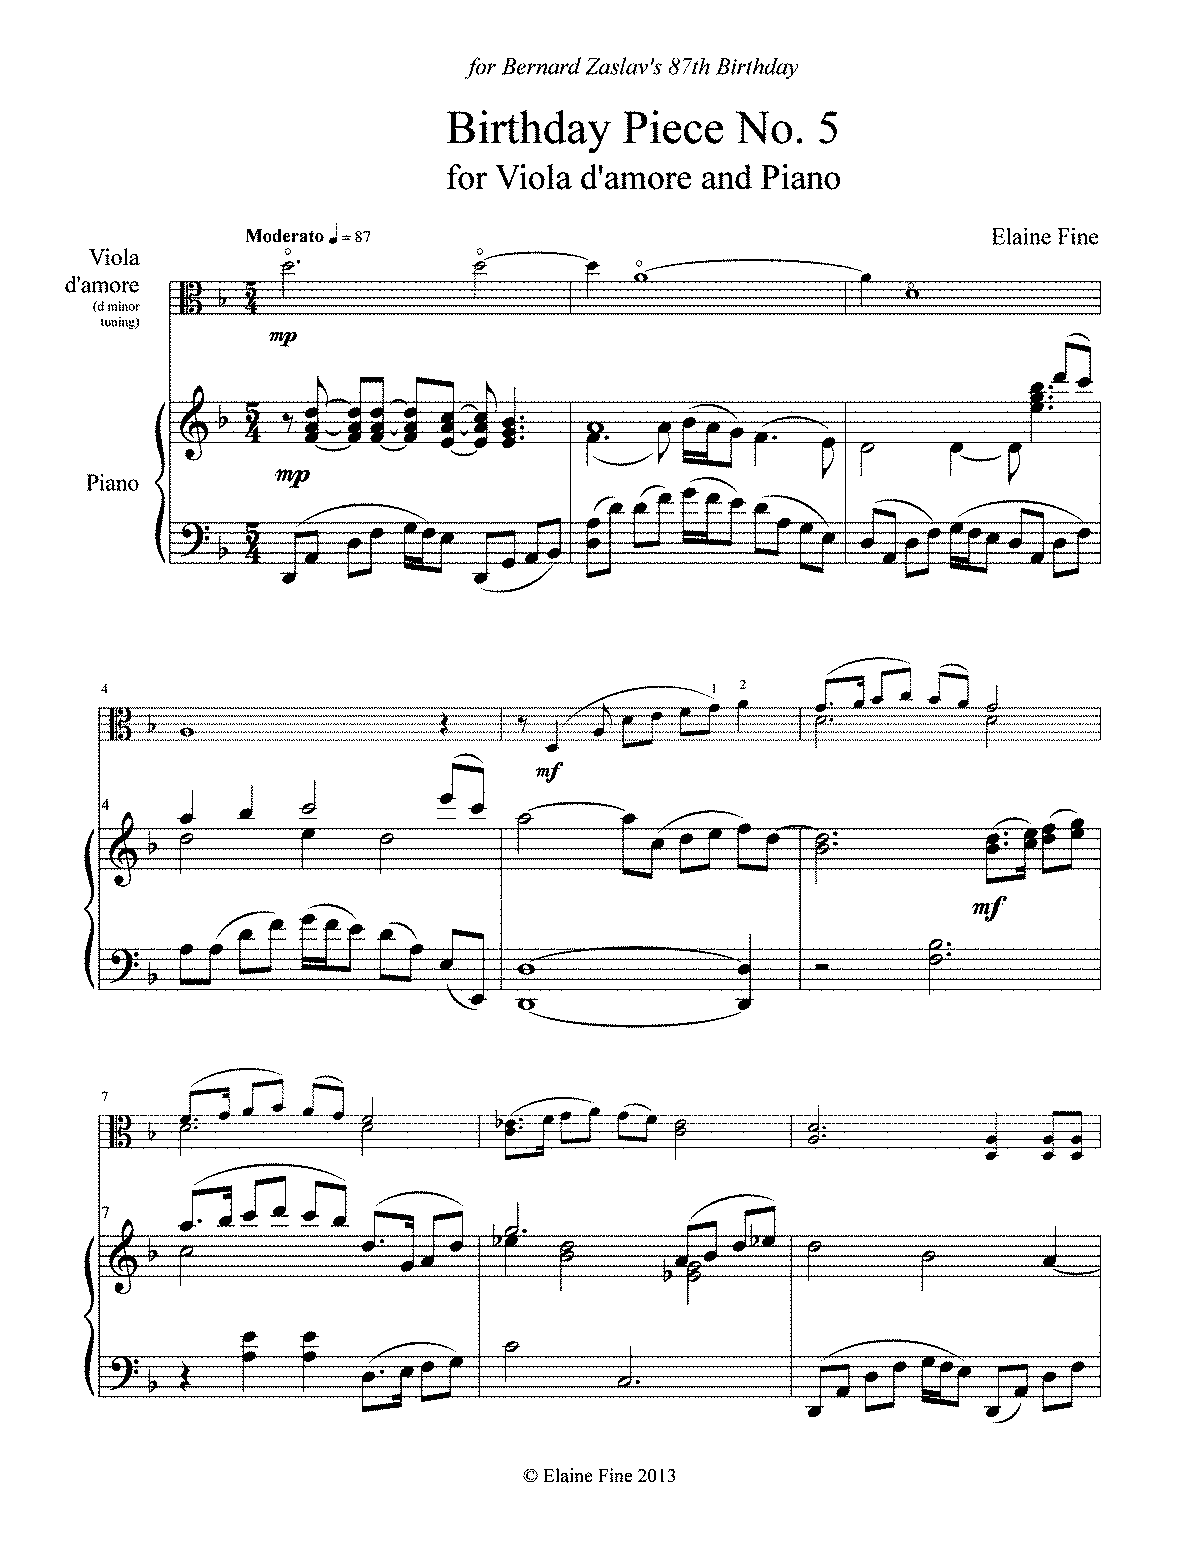 PMLP448477-Birthday Piece No. 5 Score and Parts.pdf